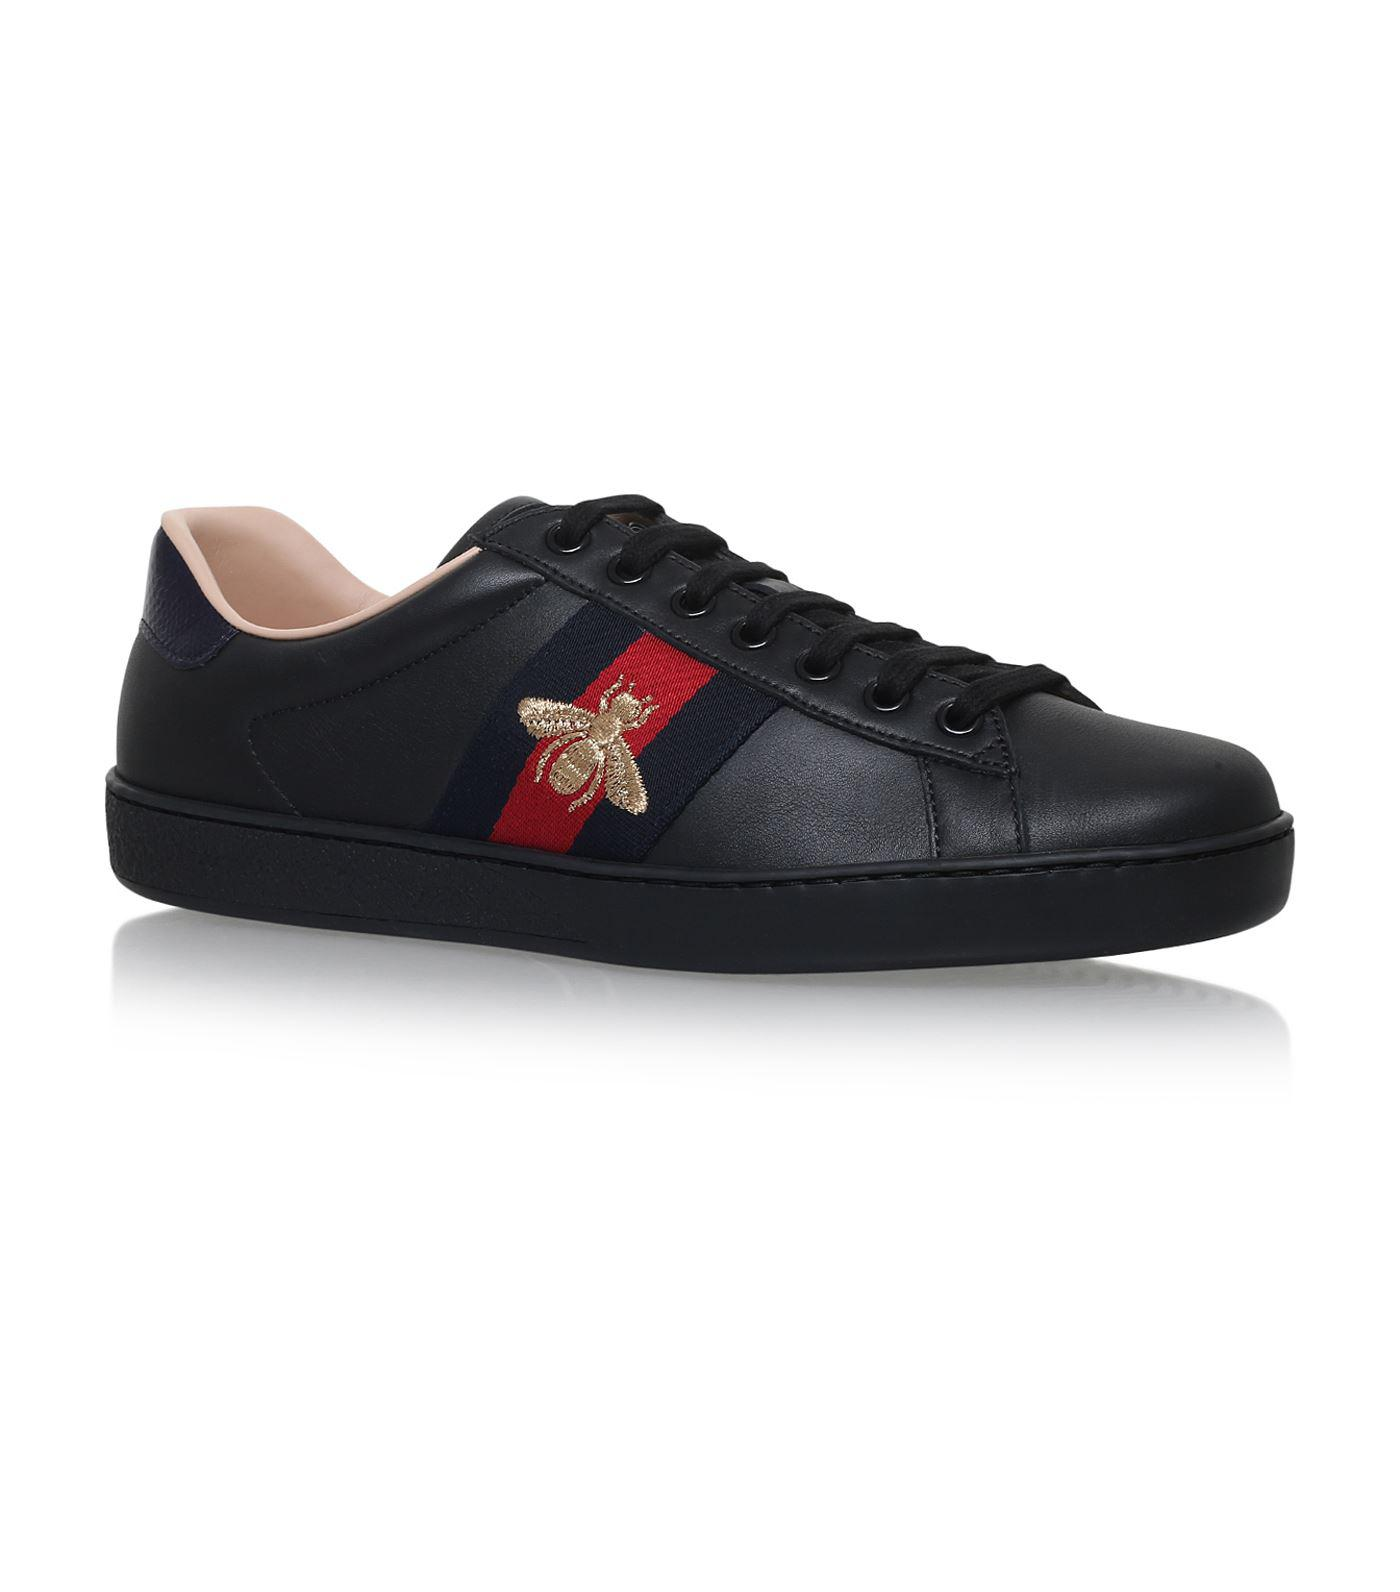 2019 year style- All gucci black shoes photo